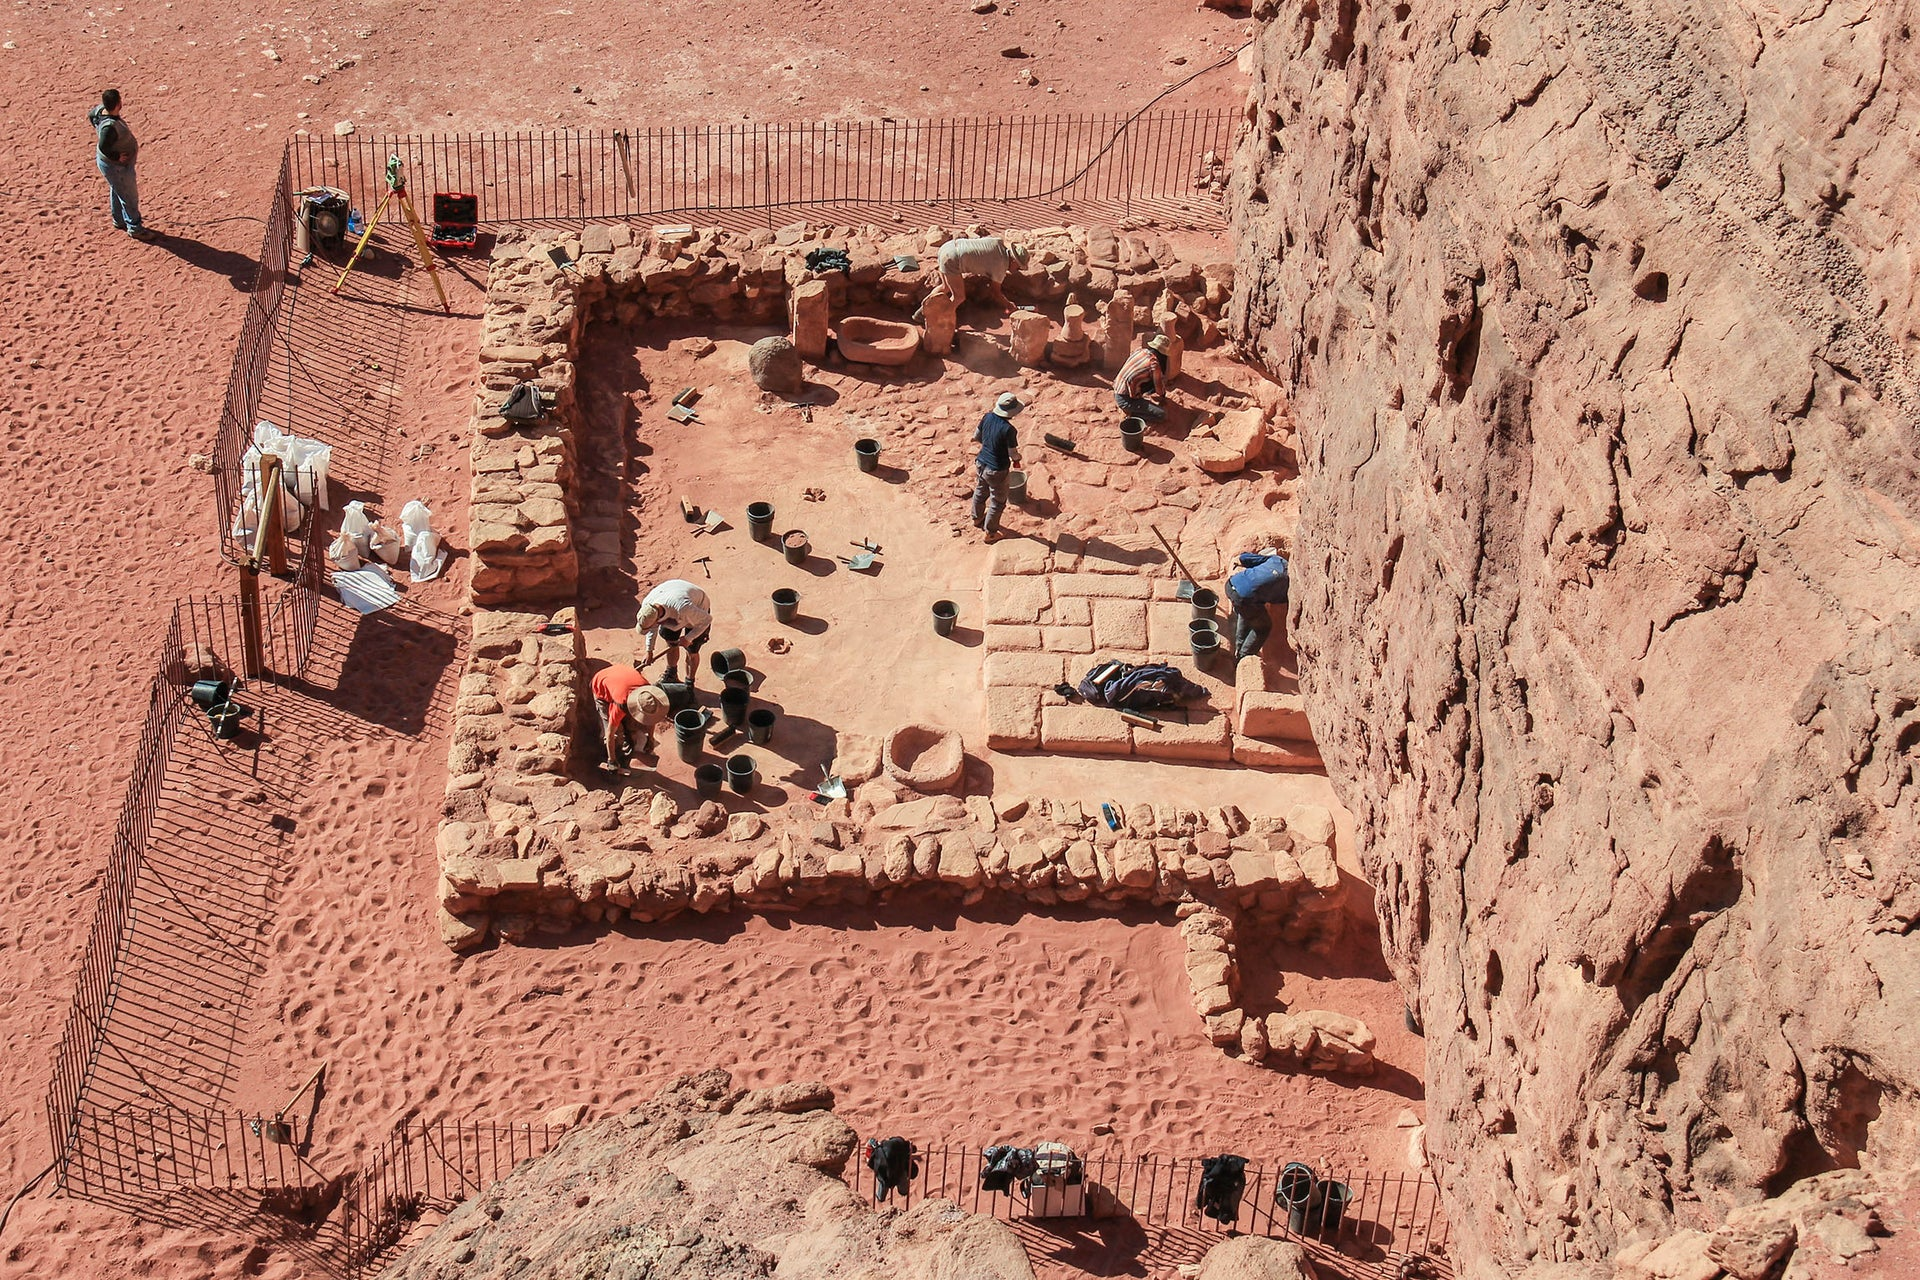 Remains of temple discovered at Timna, first used by the Egyptians in the Bronze Age and later by the Edomites in the Iron Age